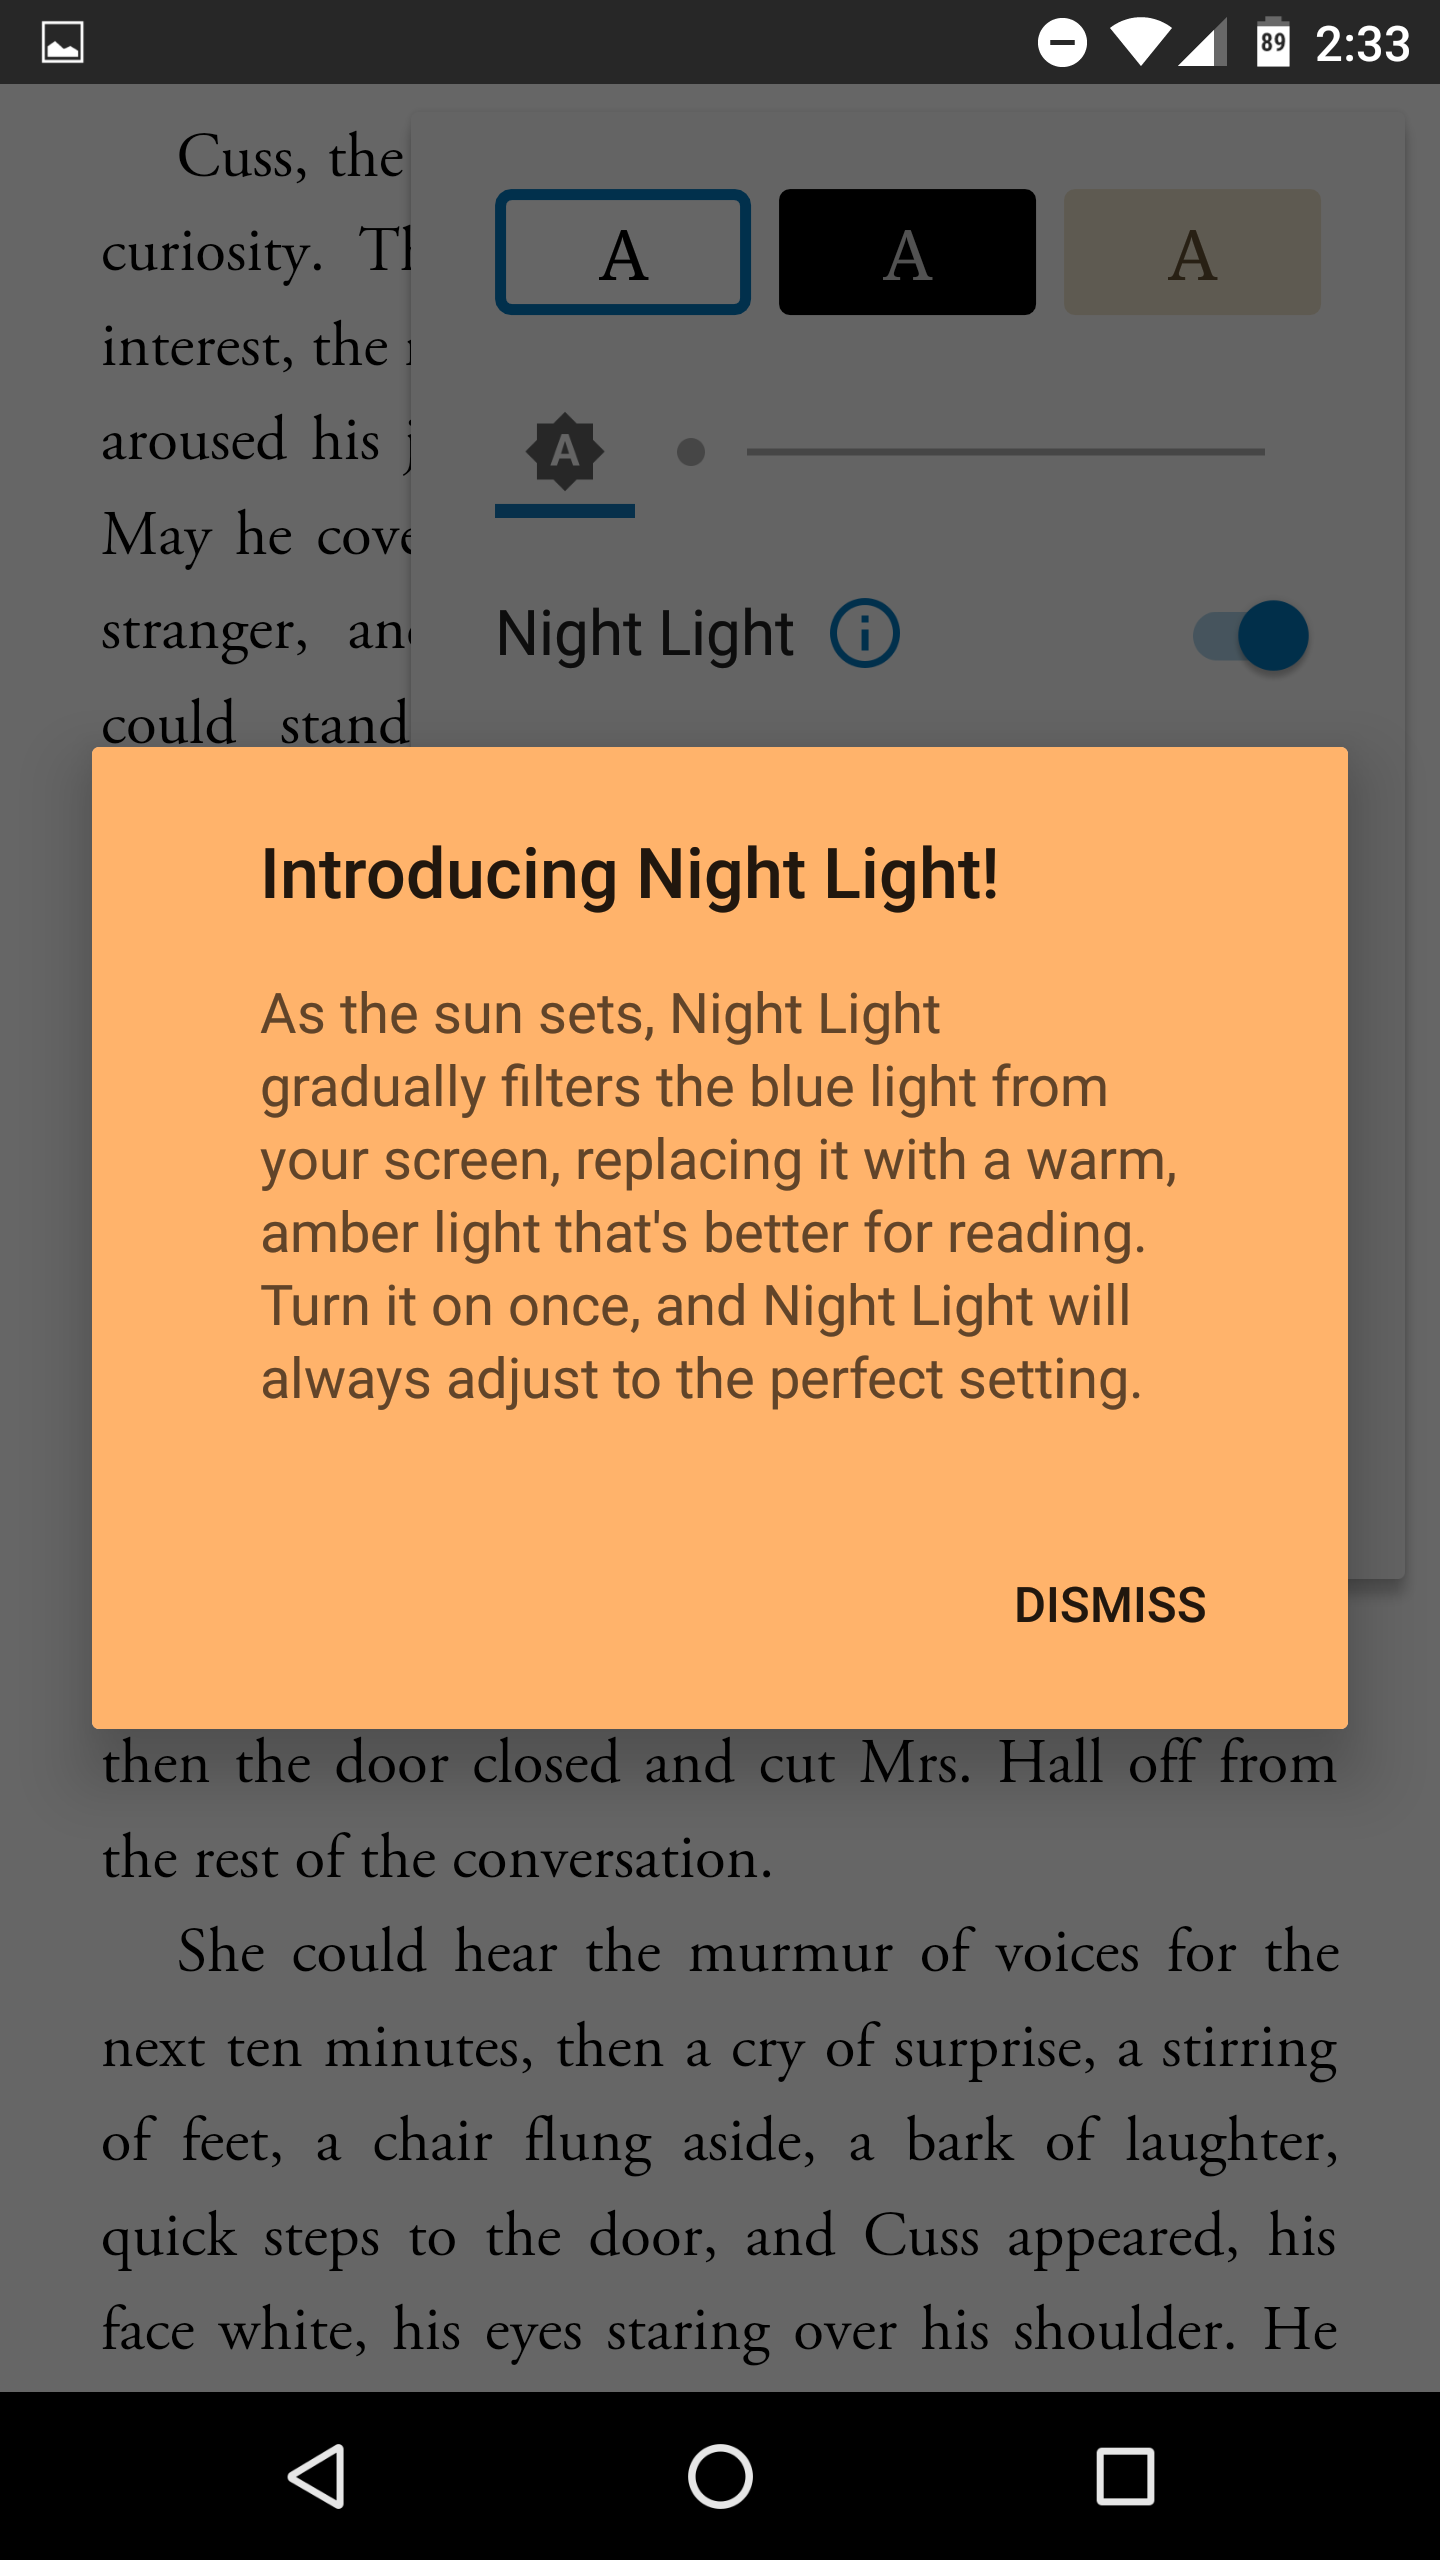 google play books 3 7 45 adds a night light that makes evening